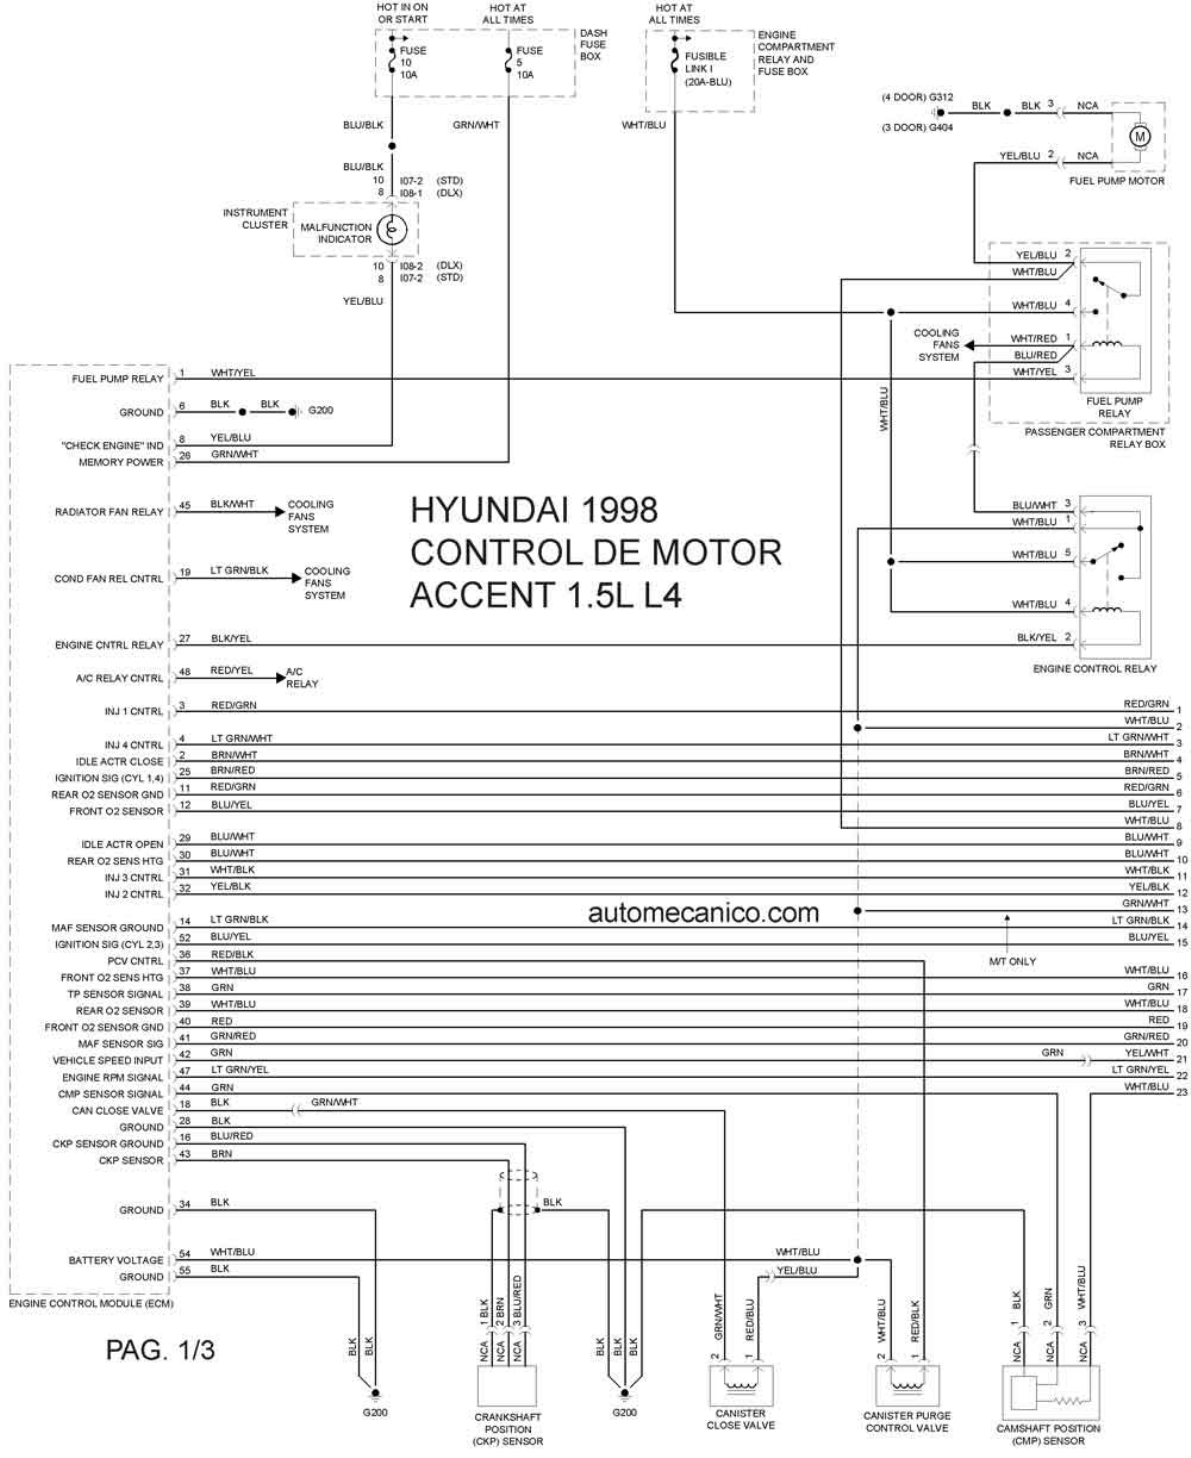 96 hyundai accent fuse box hyundai accent 1998 misc document wiring diagram pdf hyundai accent schematic